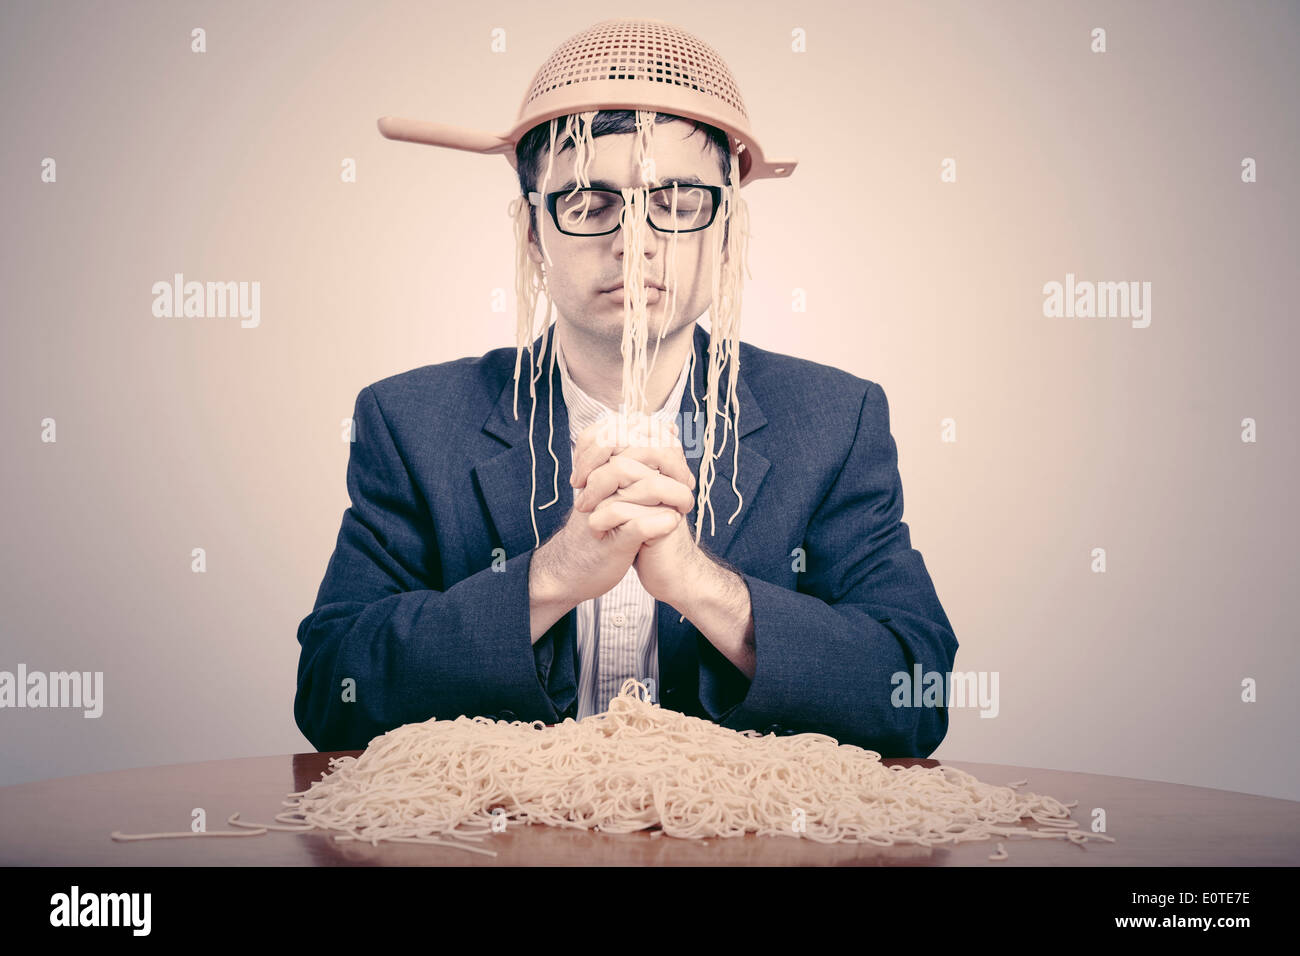 Pastafarian wearing a colander praying for pasta to the Flying Spaghetti Monster. - Stock Image